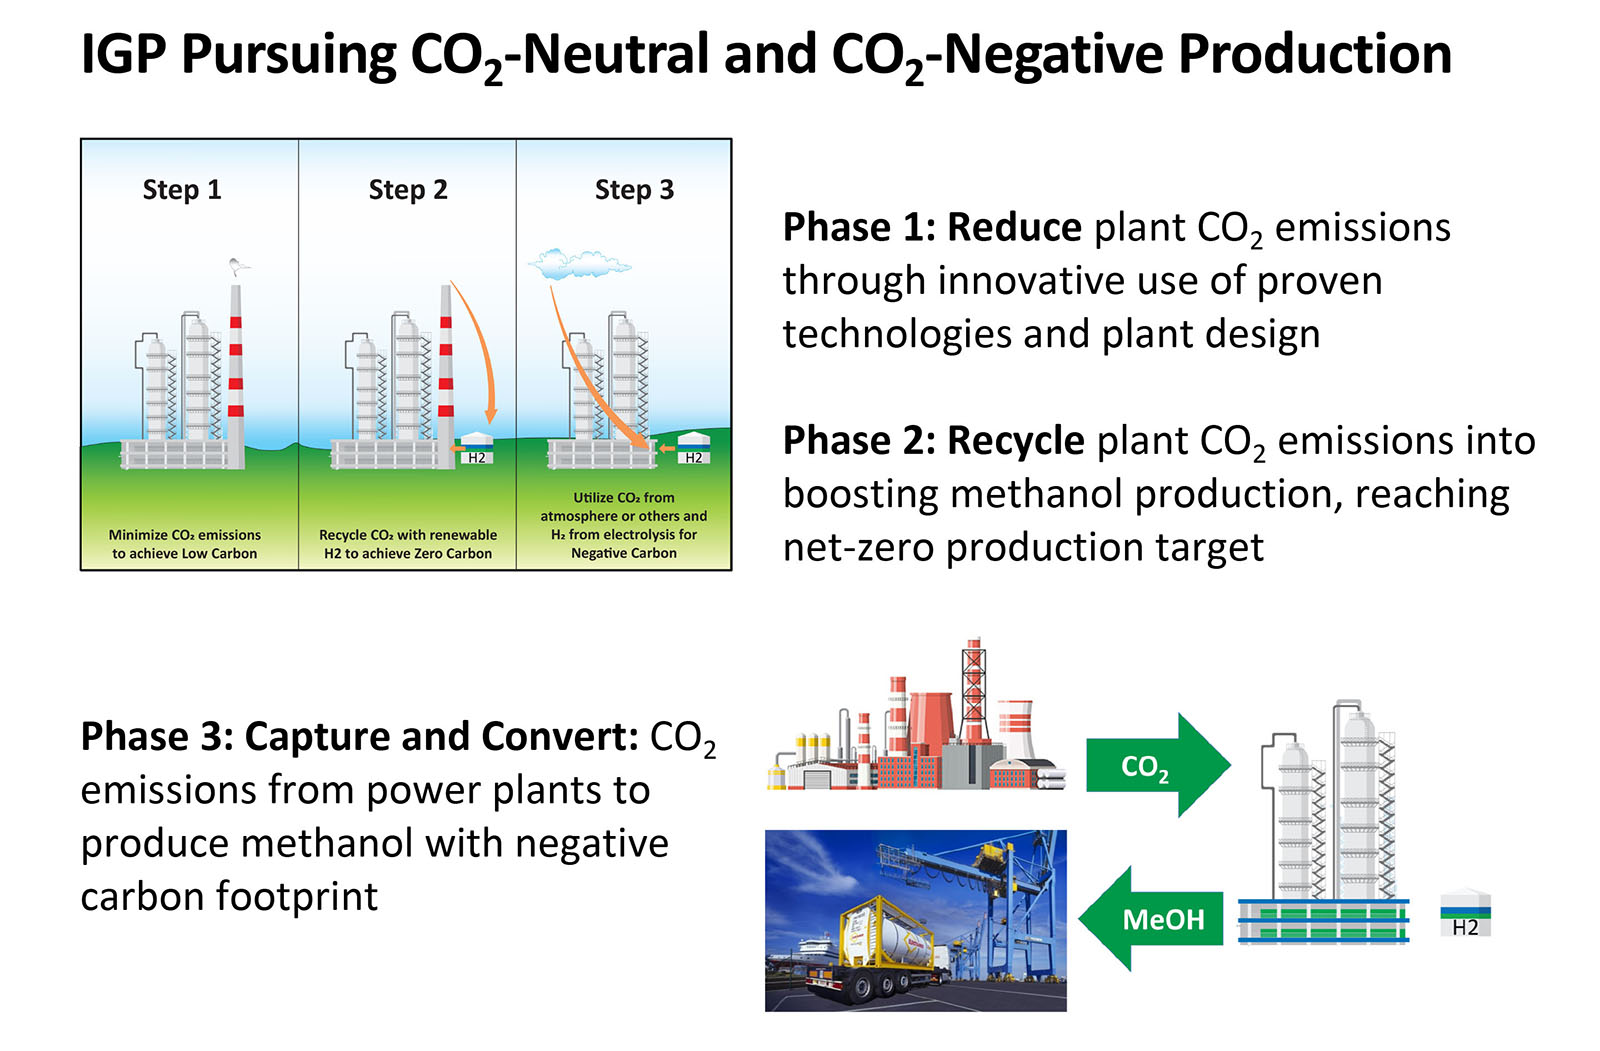 IGP Pusuing CO2-Neutral and CO2-Negative Production